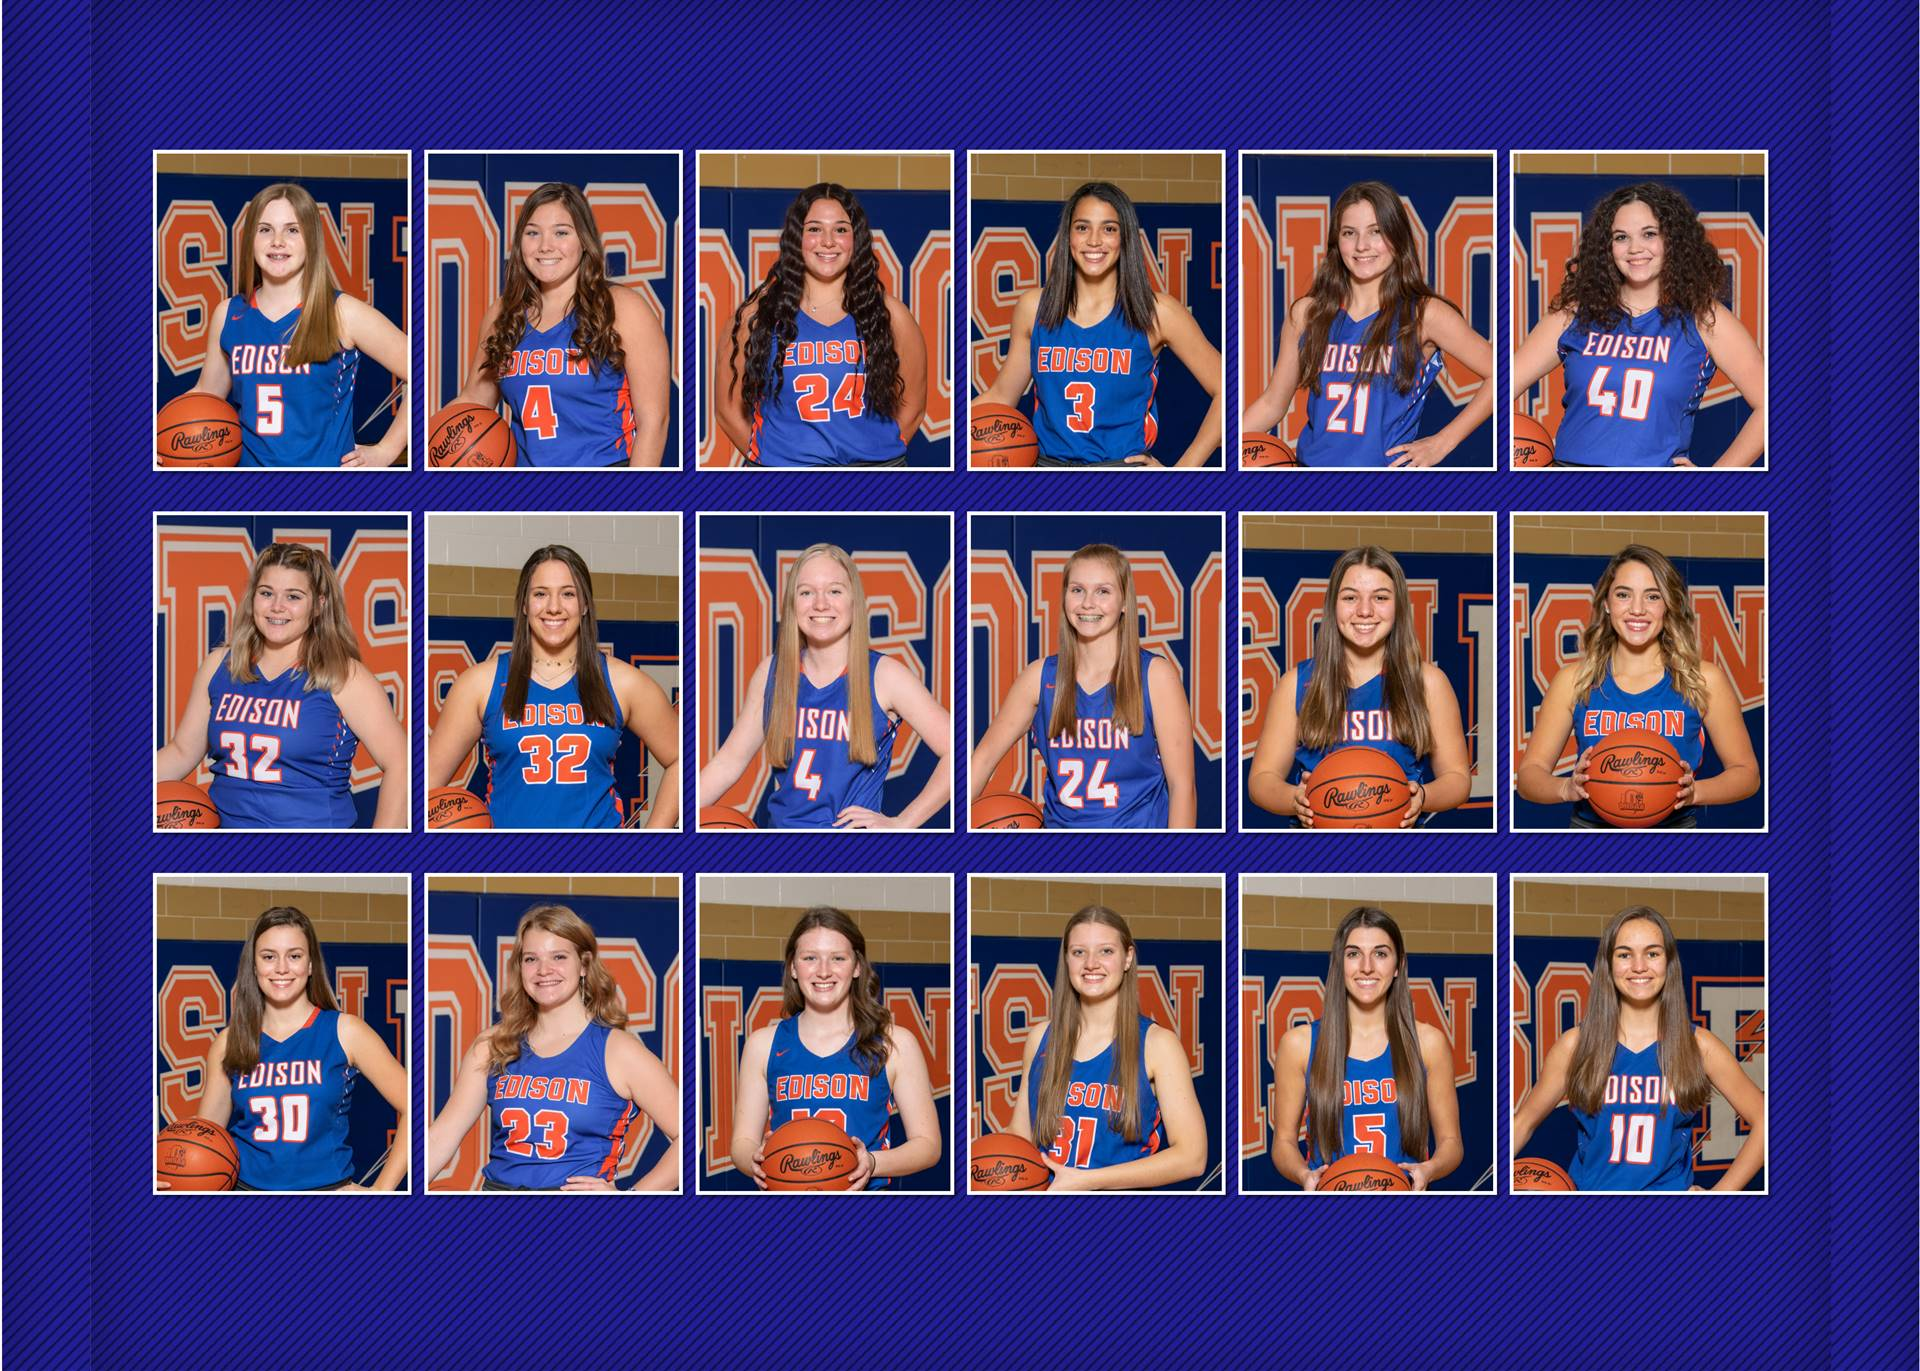 2020-21 Lady Charger Basketball Team